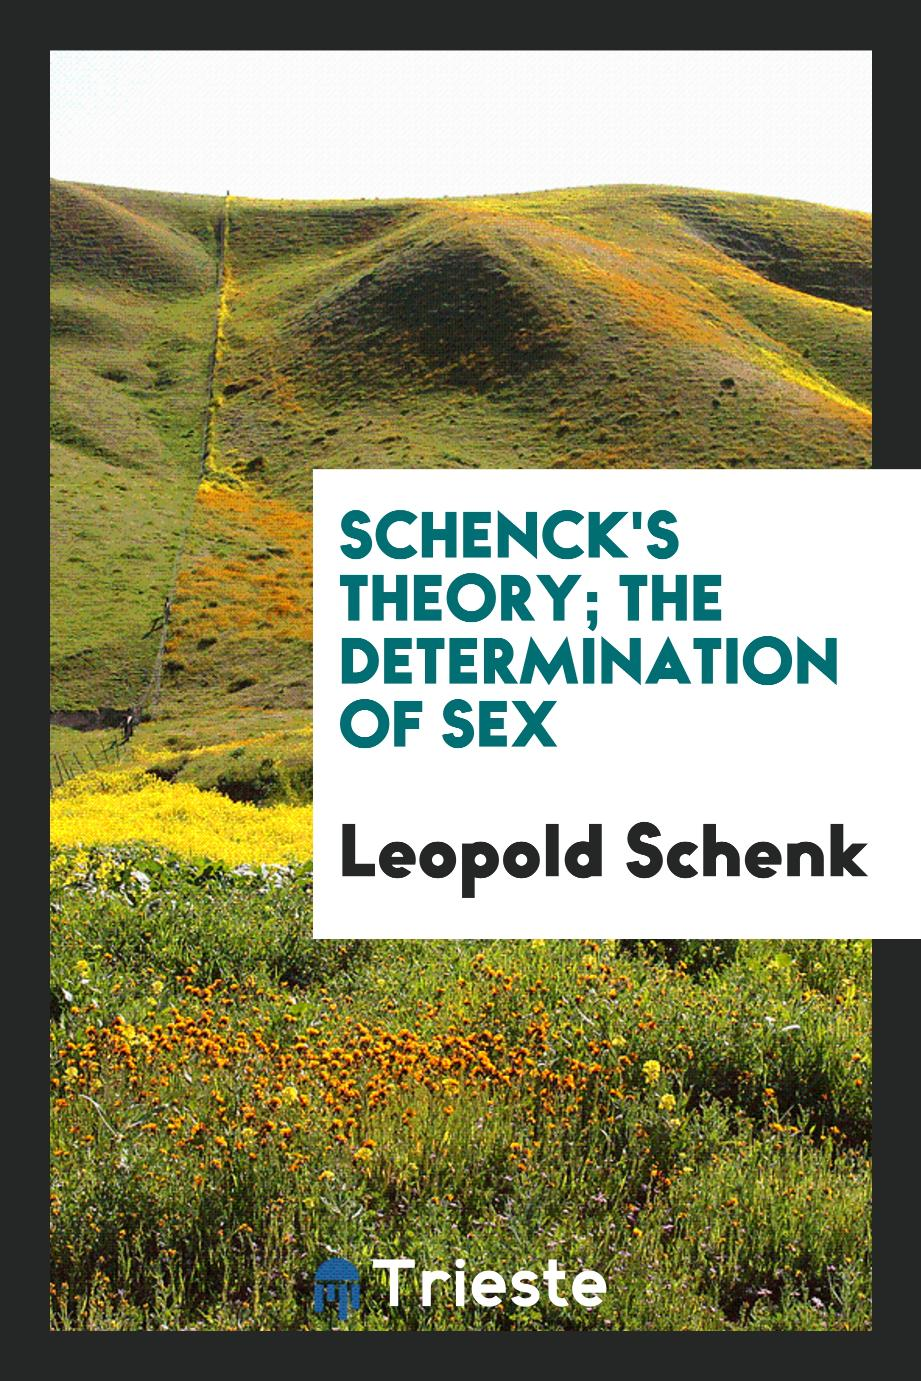 Schenck's theory; the determination of sex